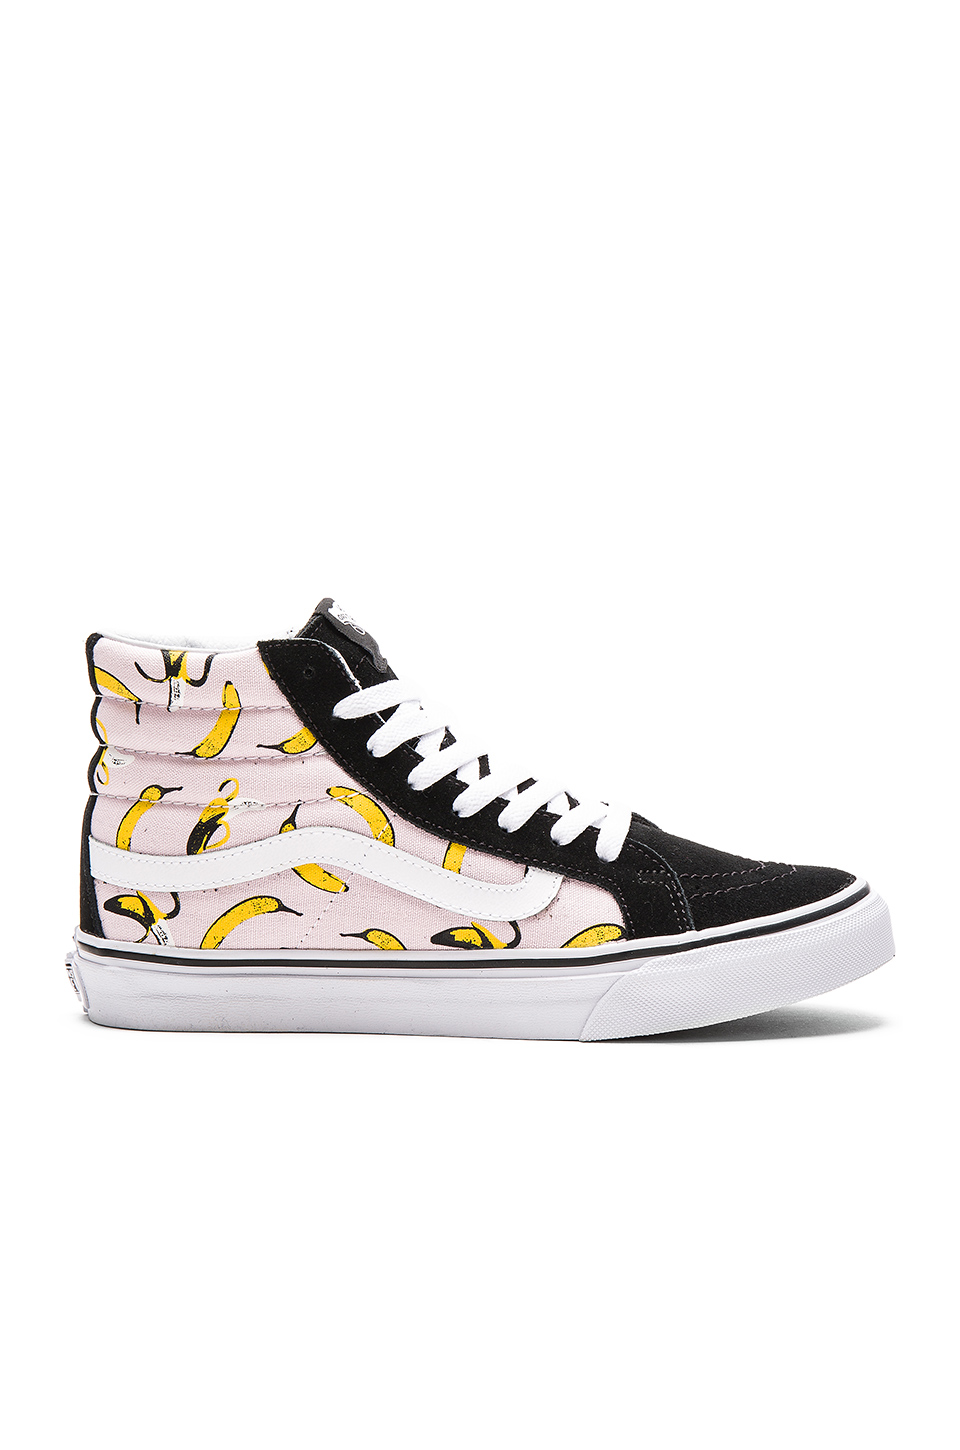 Classic Vans. Promise you won't slip.    Vans Sk8-Hi 'Banana'  $75  $56, available at  Zappos .